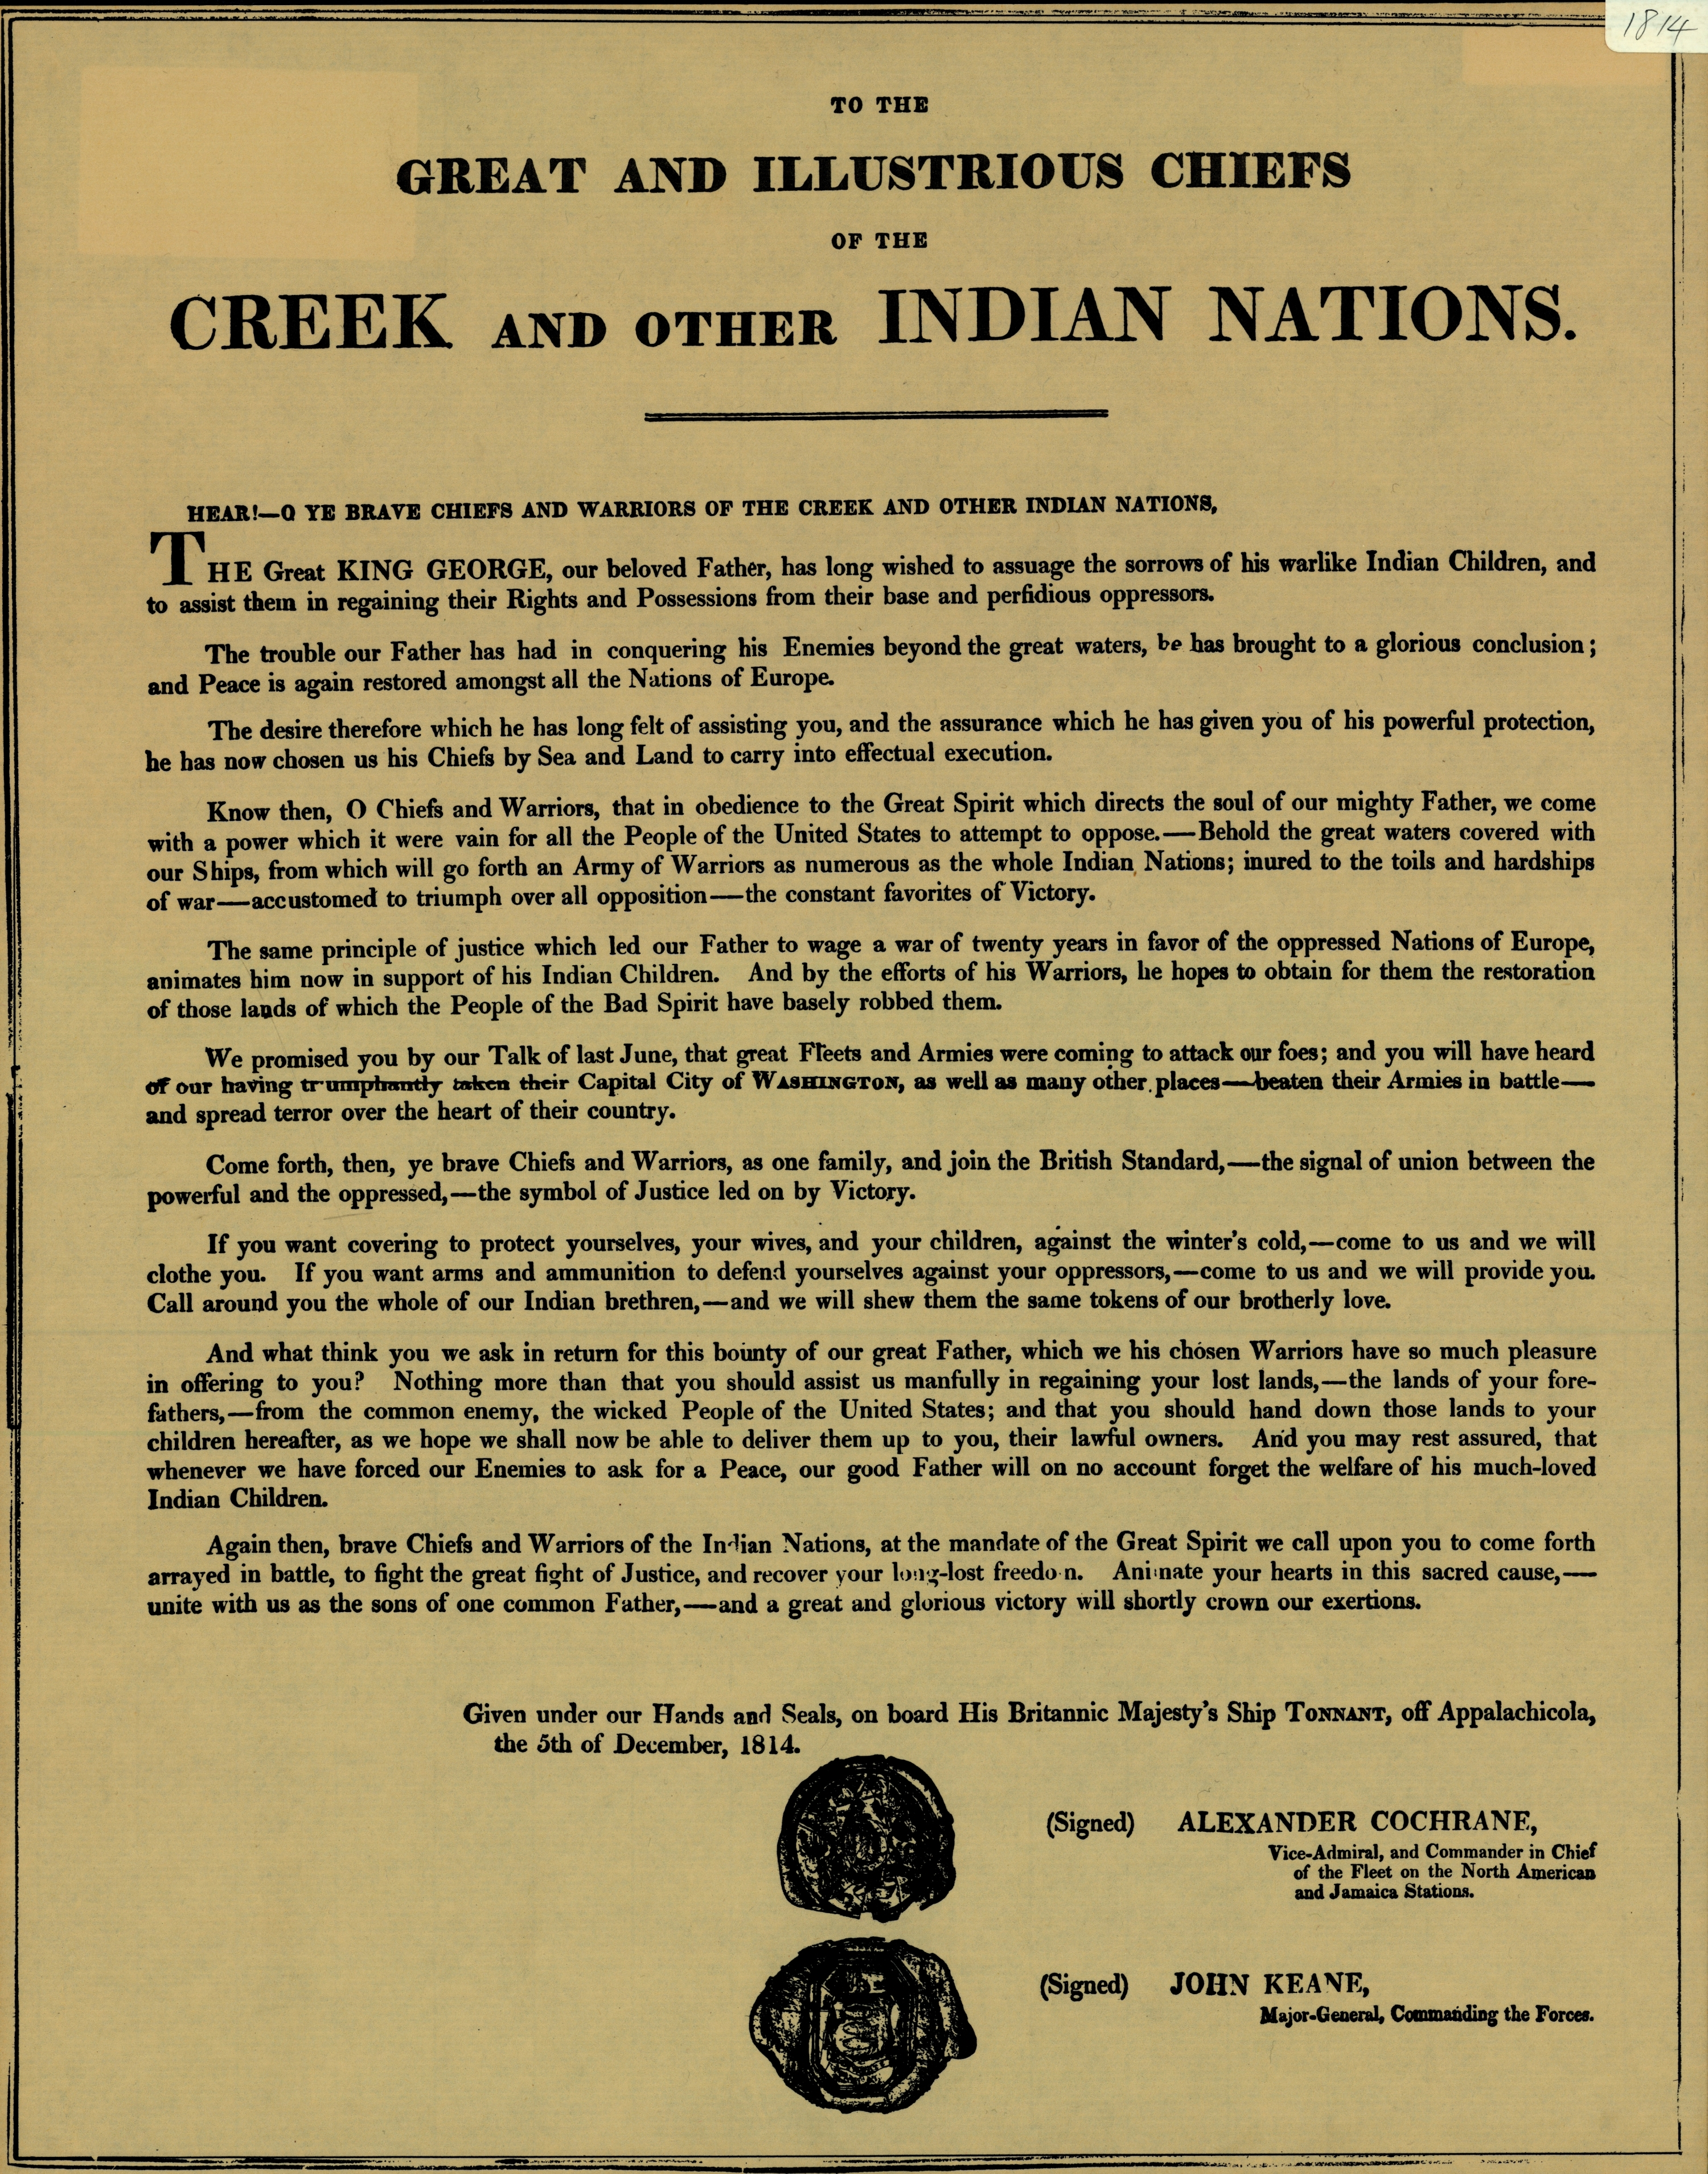 To the great and illustrious chiefs of the Creek and other Indian nations,1814, a facsimile.